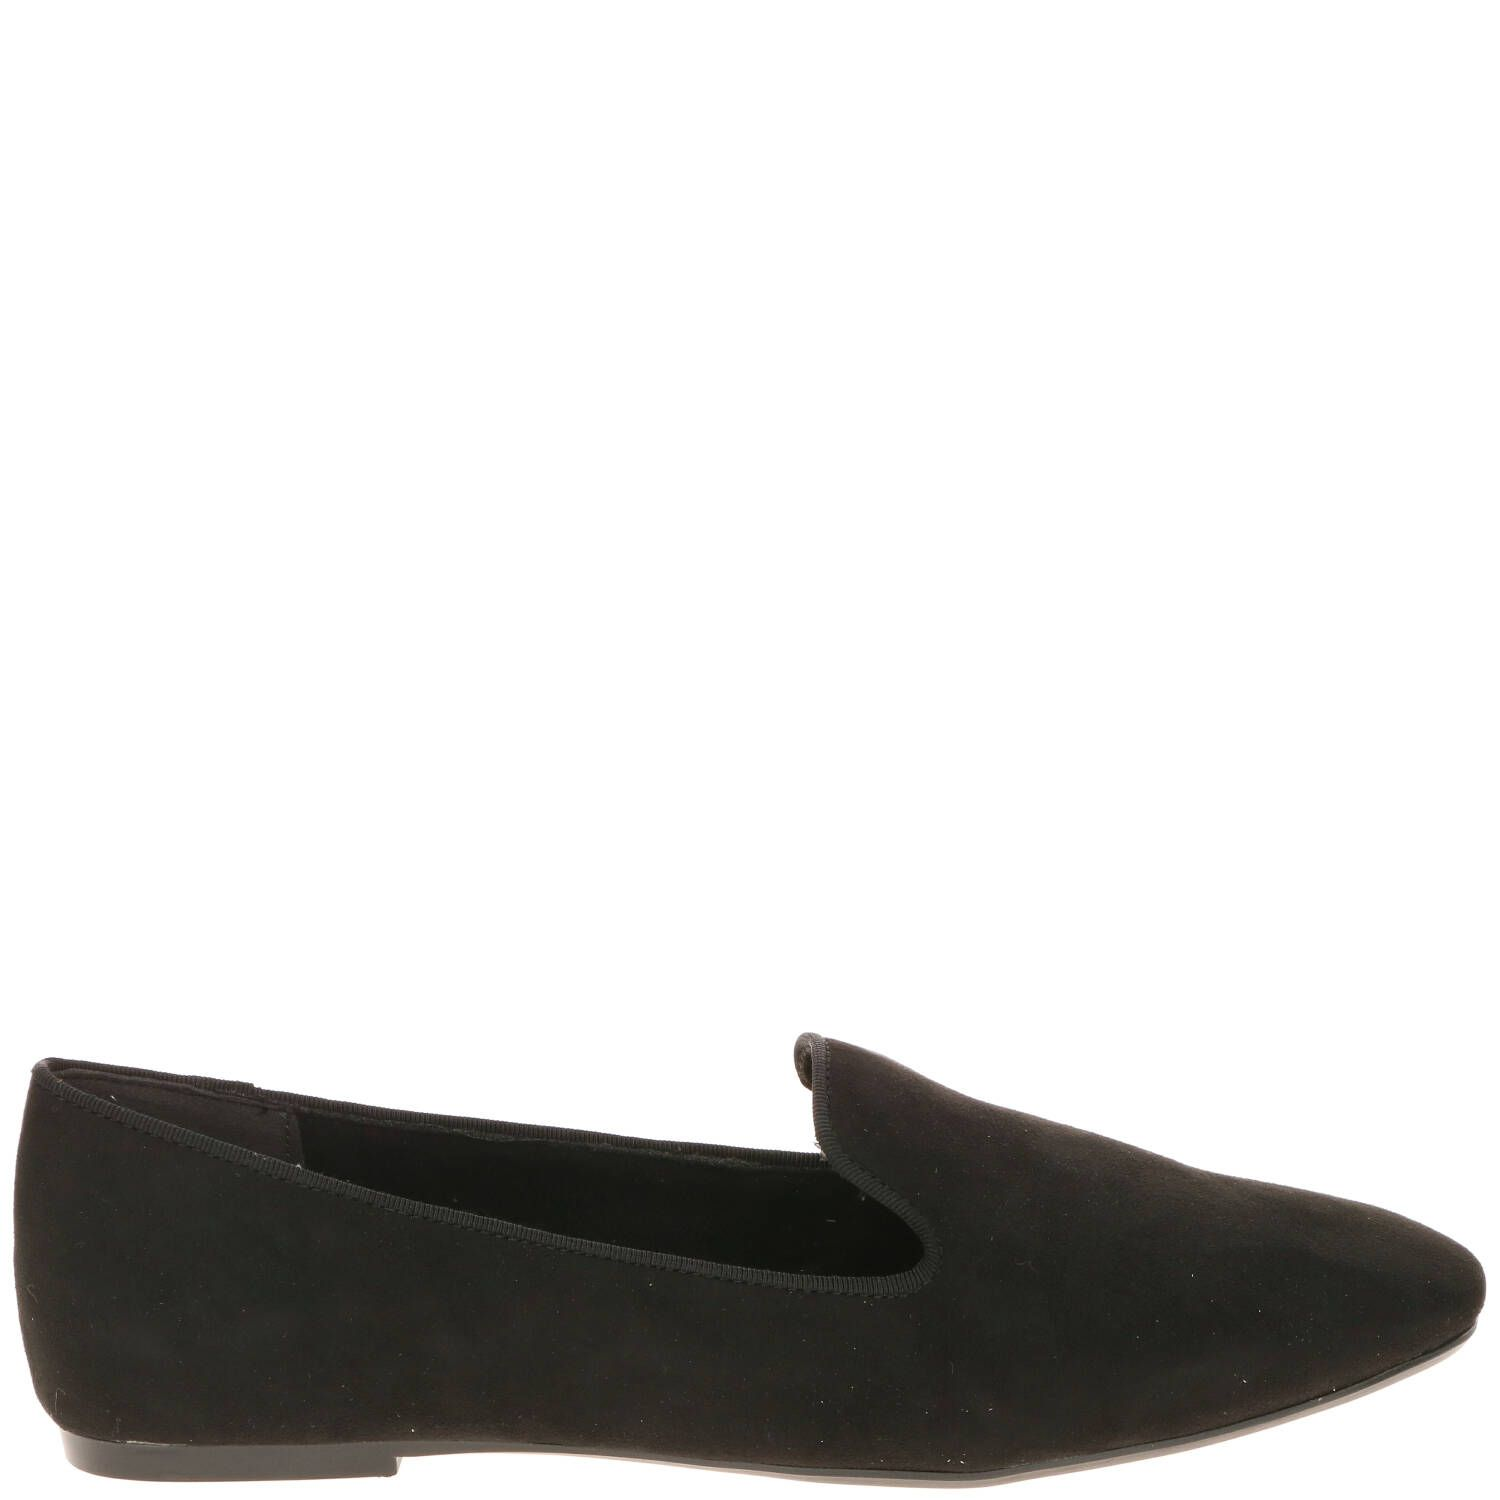 Tamaris Lorita Loafer Dames Zwart